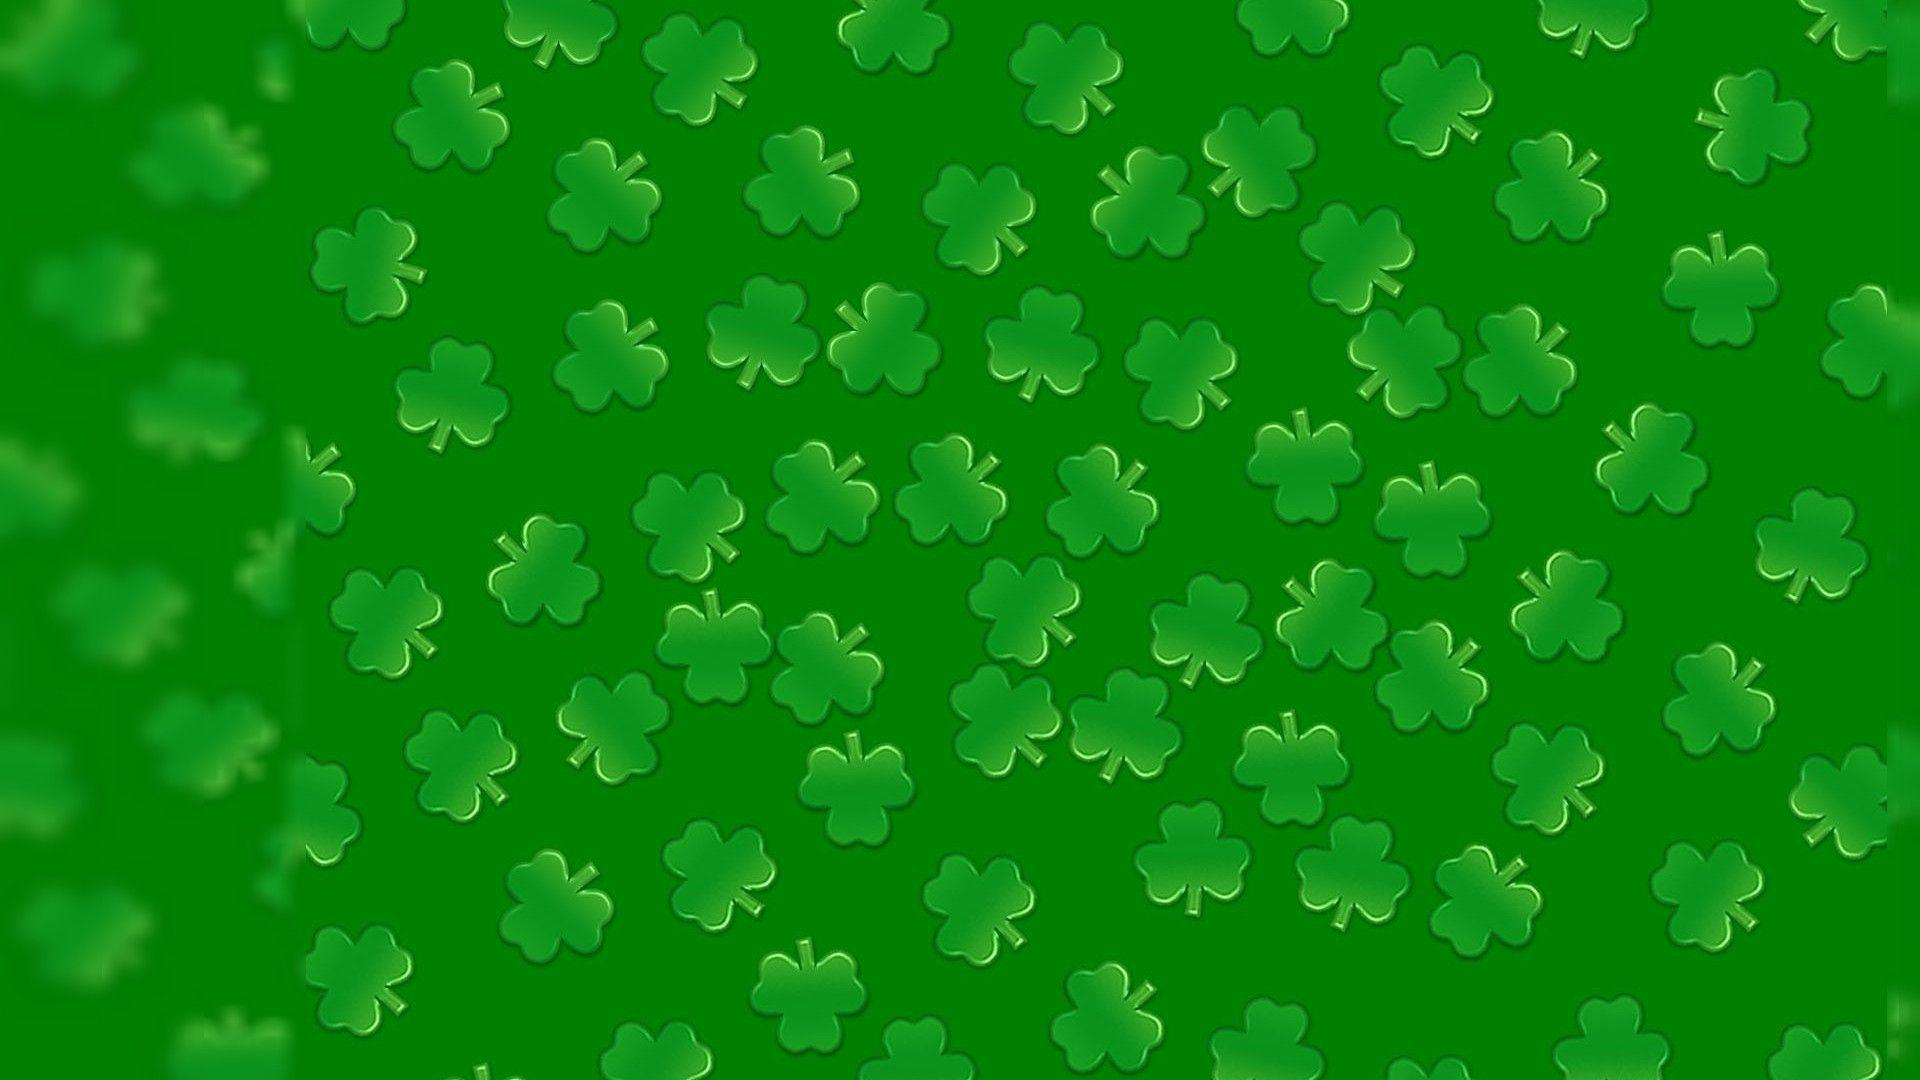 simple st patrick wallpaper - photo #37